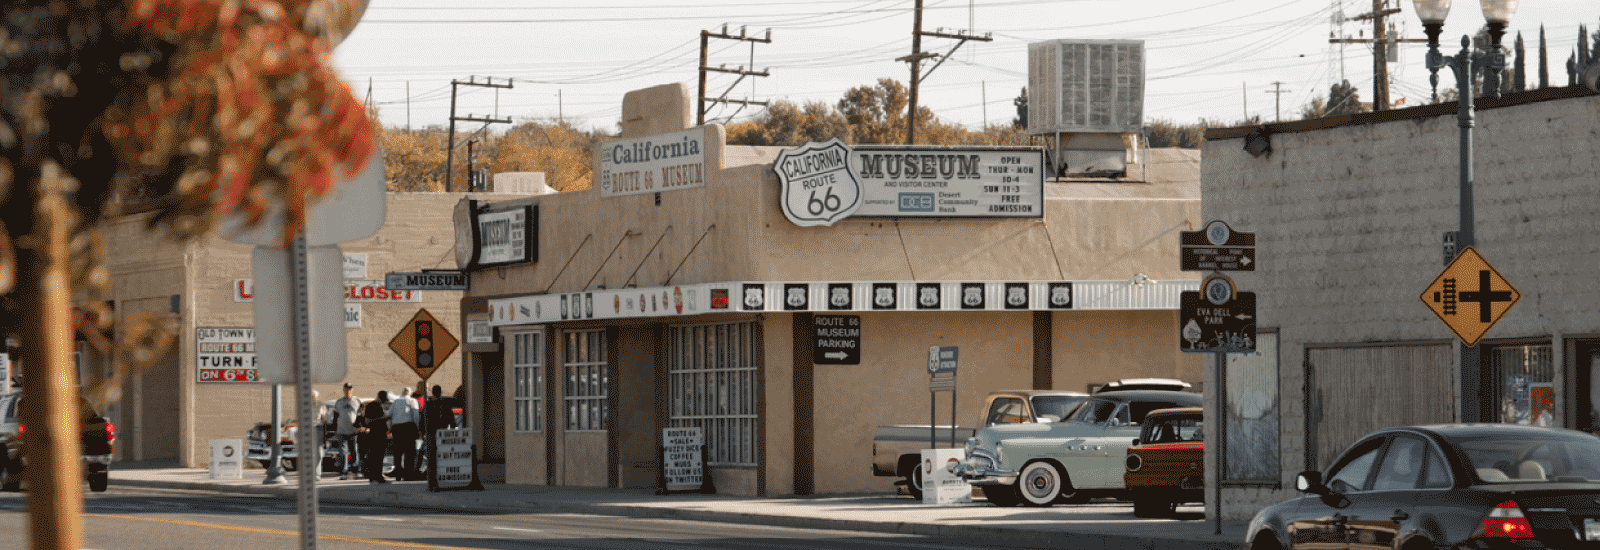 Museums and Culture Near Fort Irwin